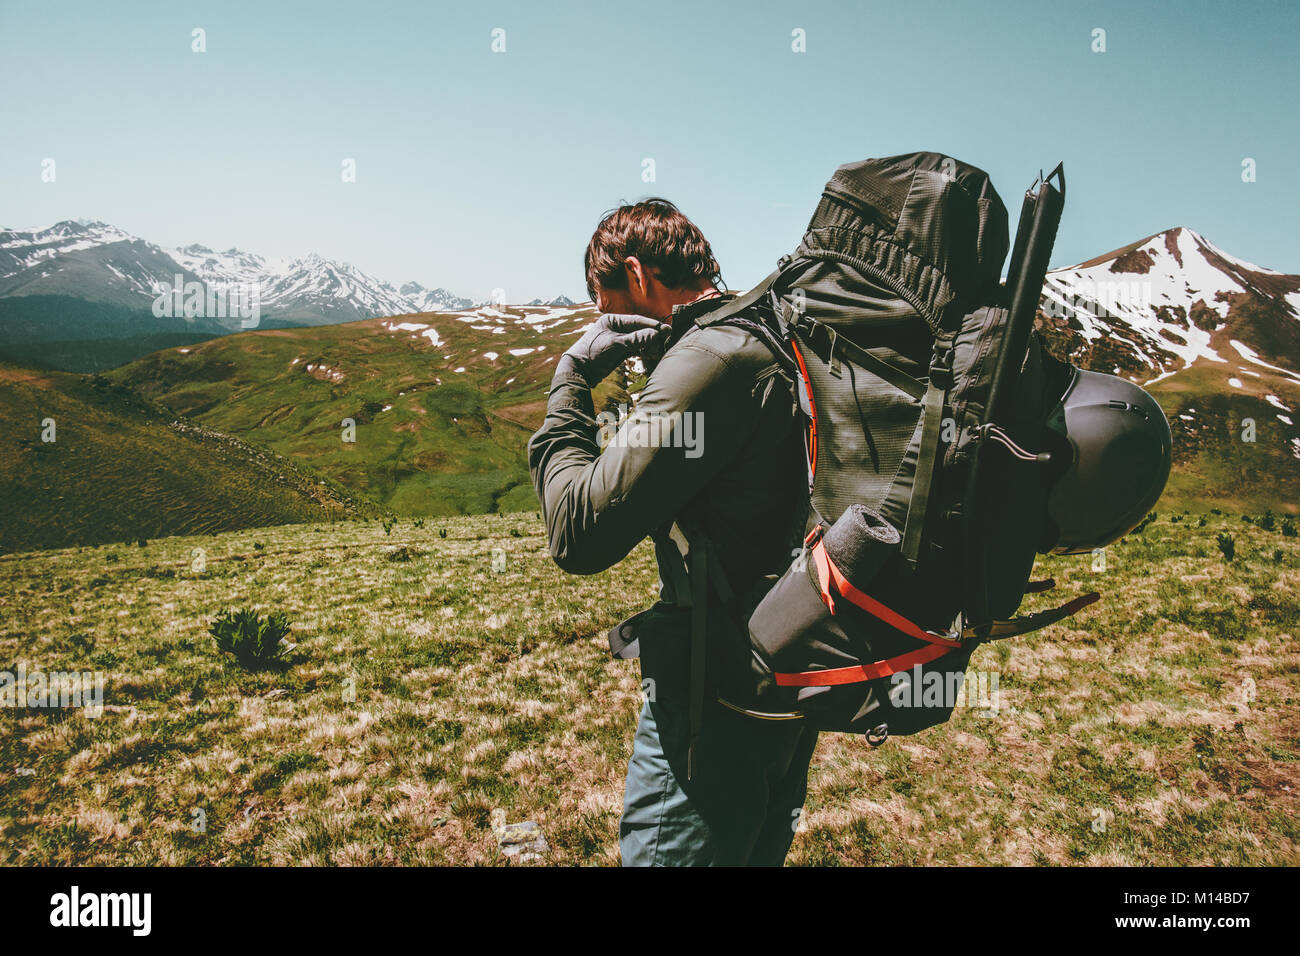 Travel Man with big backpack  mountaineering Lifestyle survival concept adventure outdoor active summer vacations - Stock Image